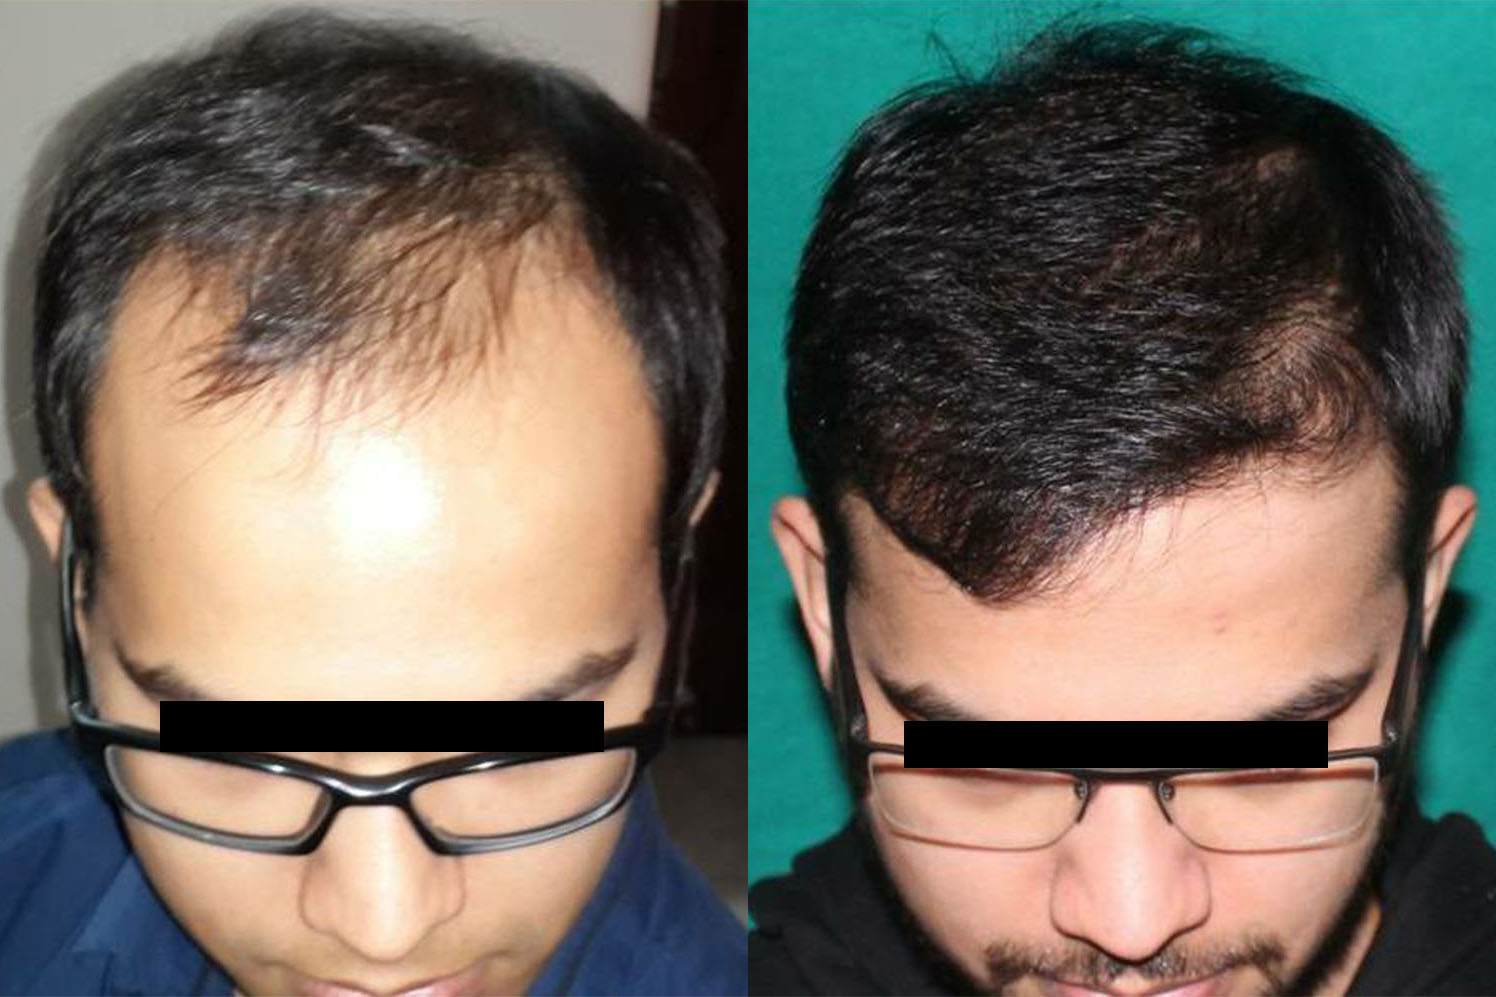 Two major merits of undergoing hair transplant surgery